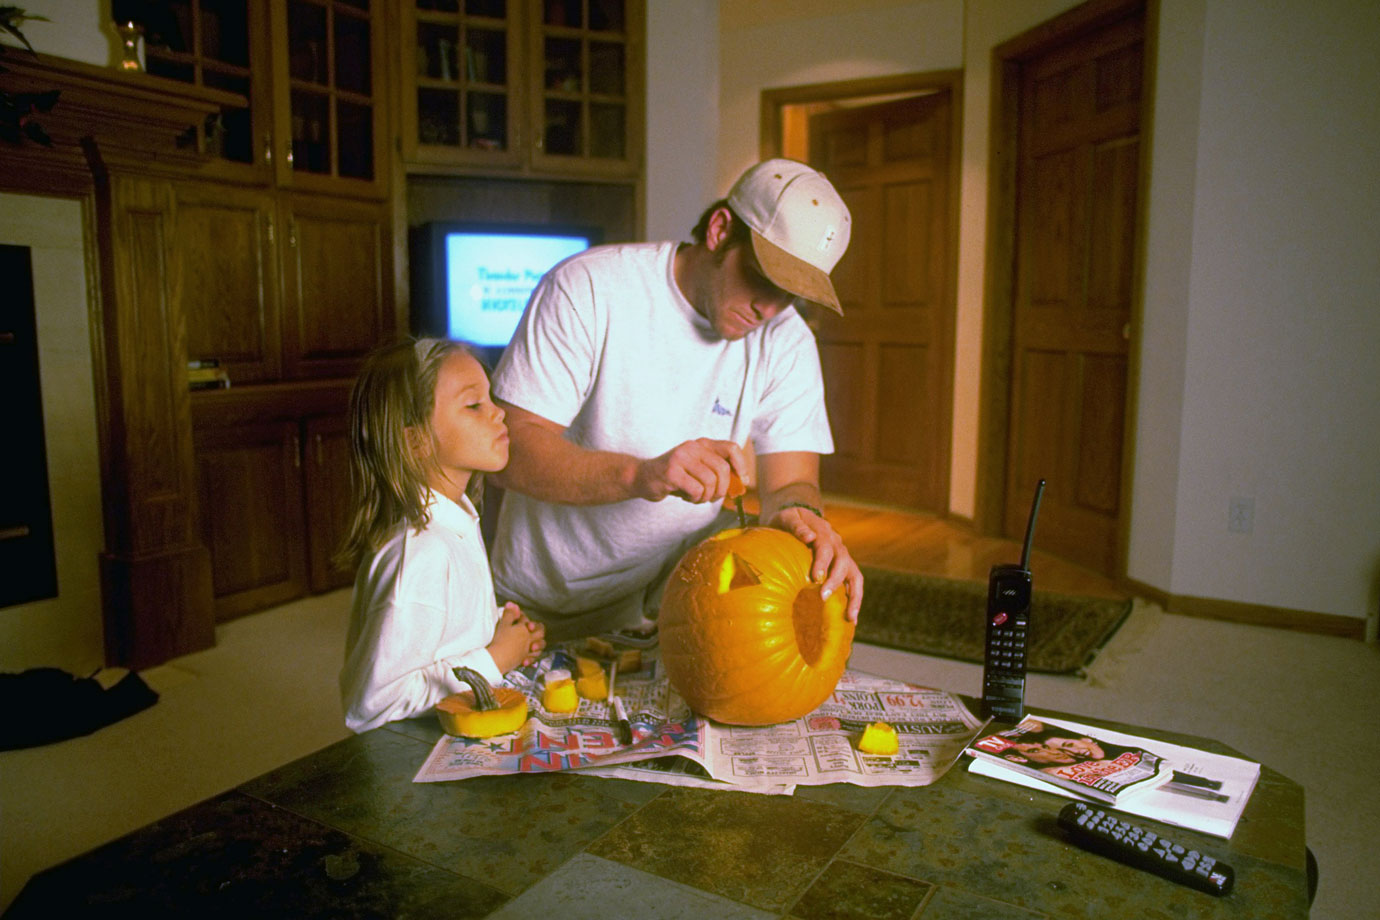 Favre then carves a pumpkin with his six-year-old daughter, Brittany...